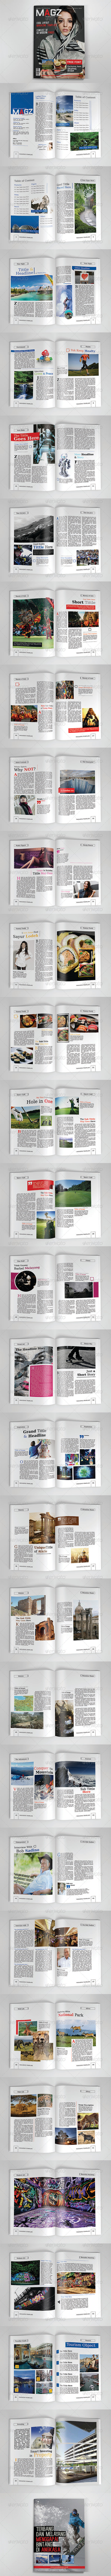 A4 Magazine Template Vol.2